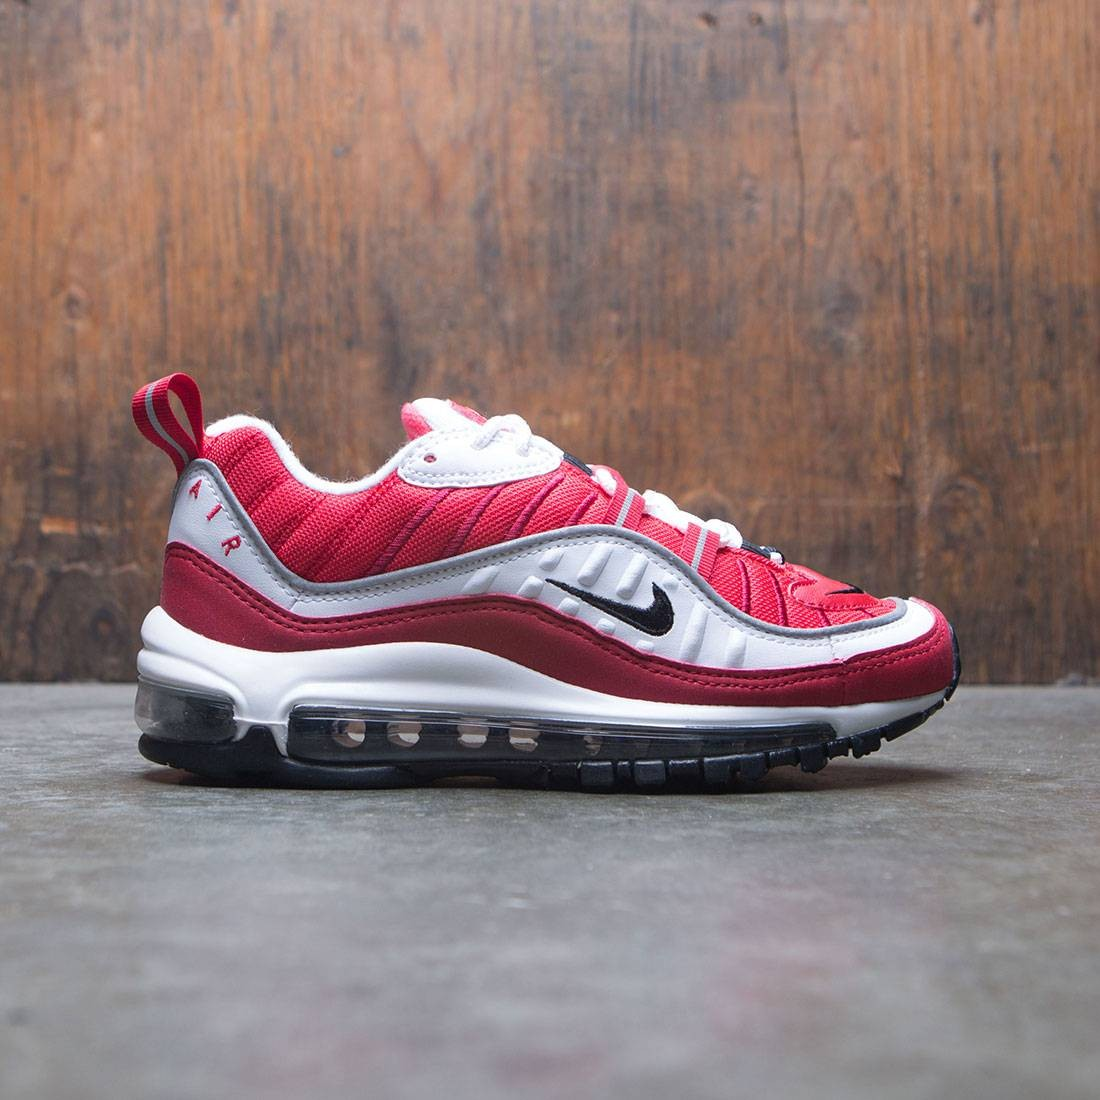 nike women air max 98 white black gym red reflect silver 0531005e5